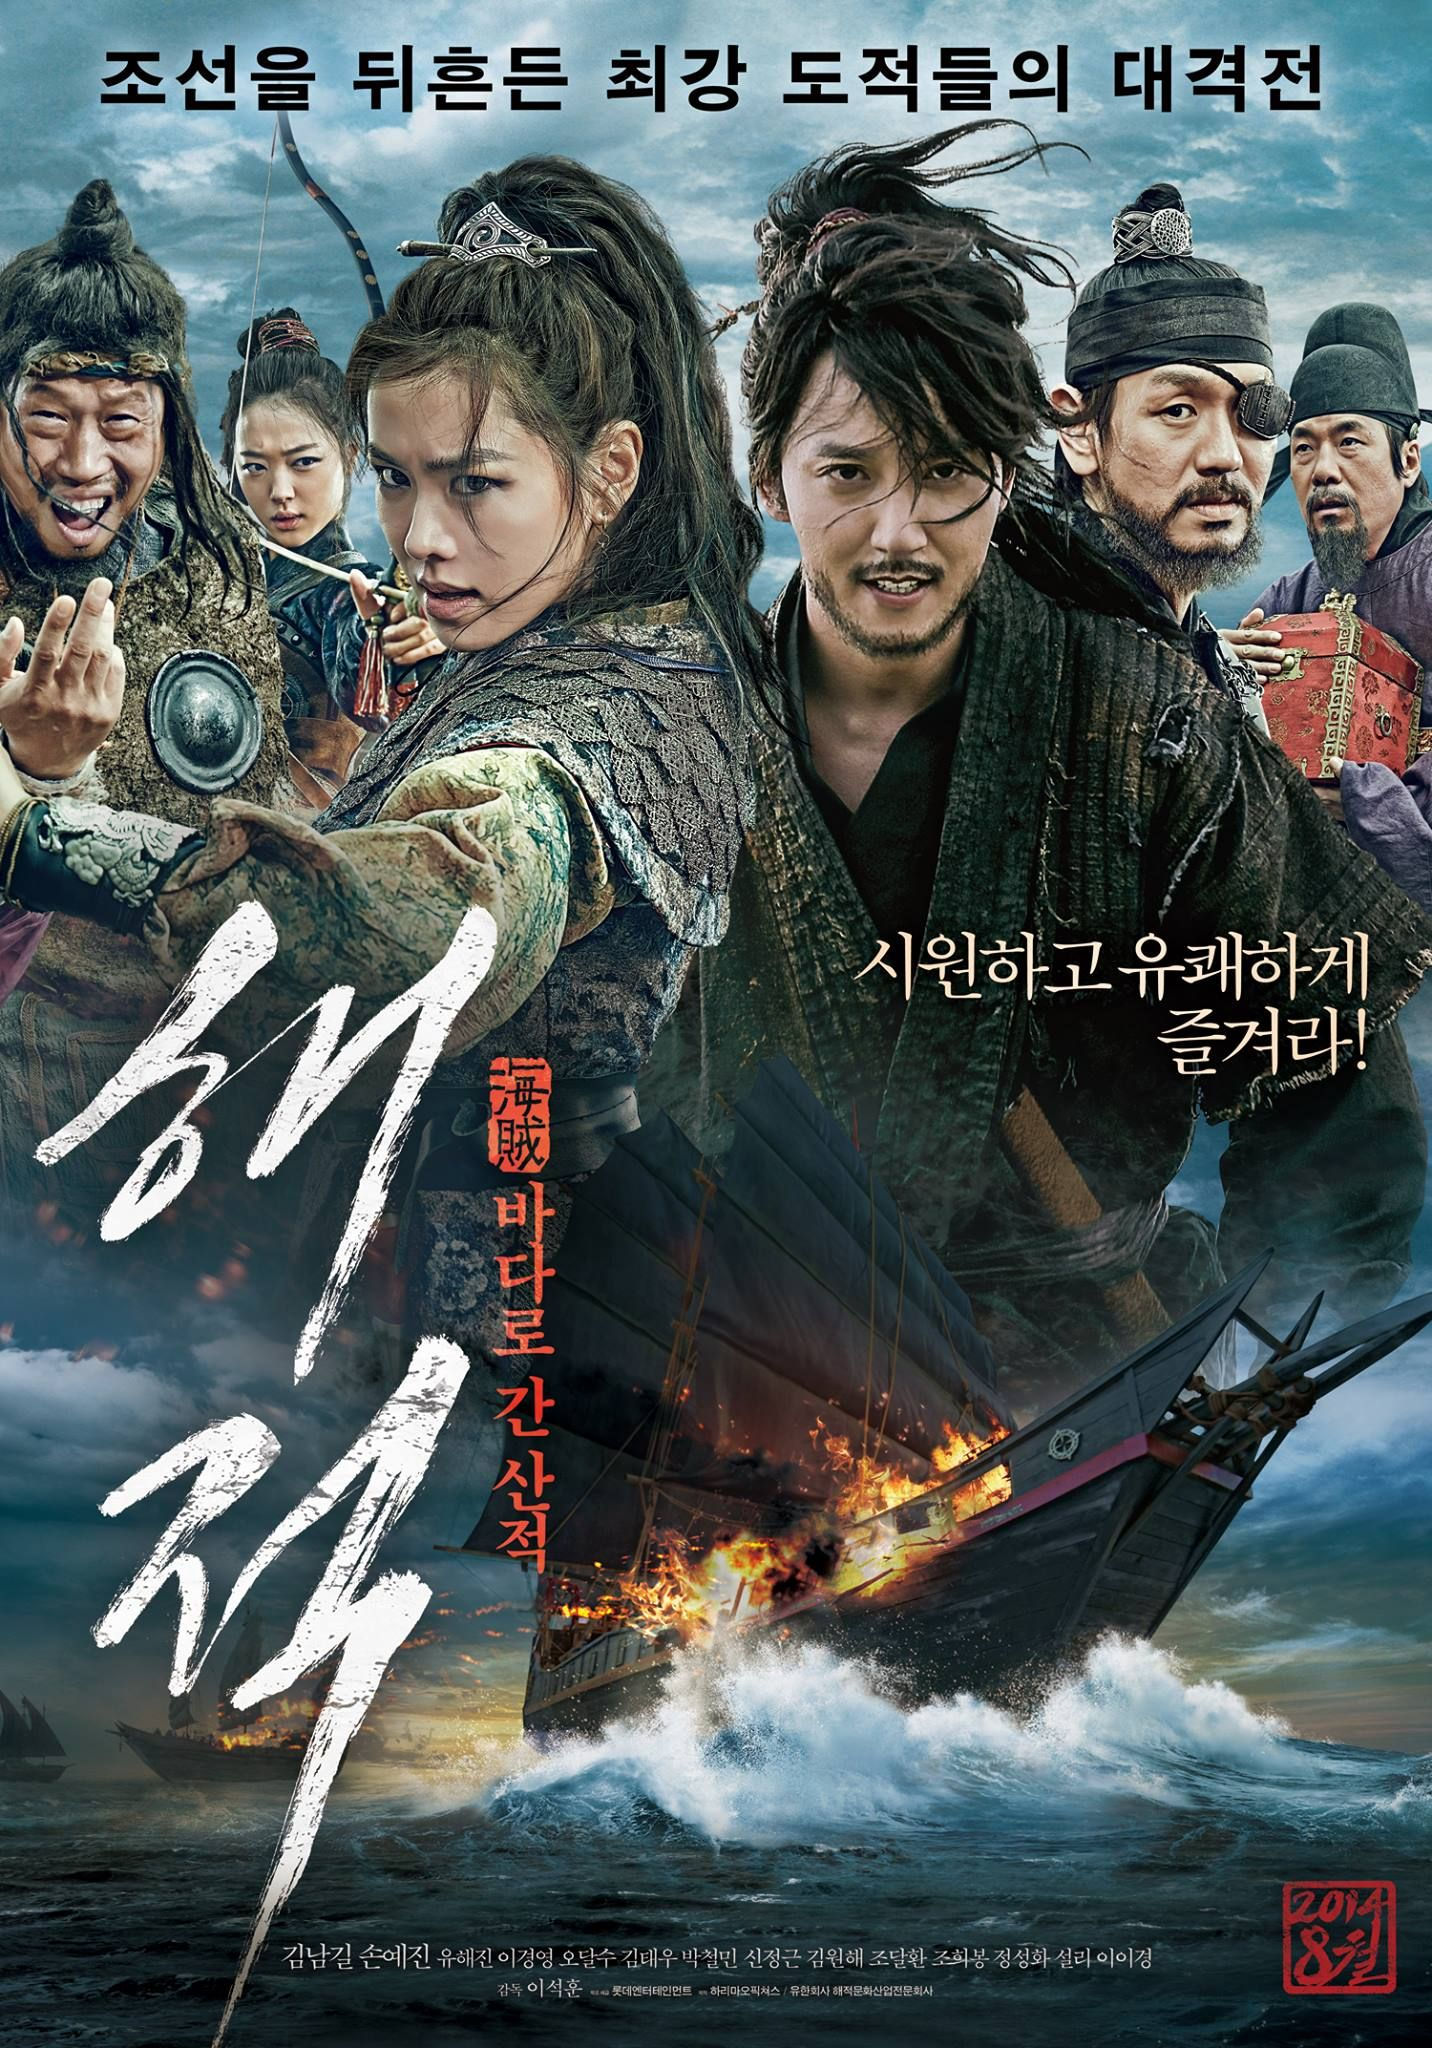 Pirates (2014) Movie Review Pirate movies, Movies 2014